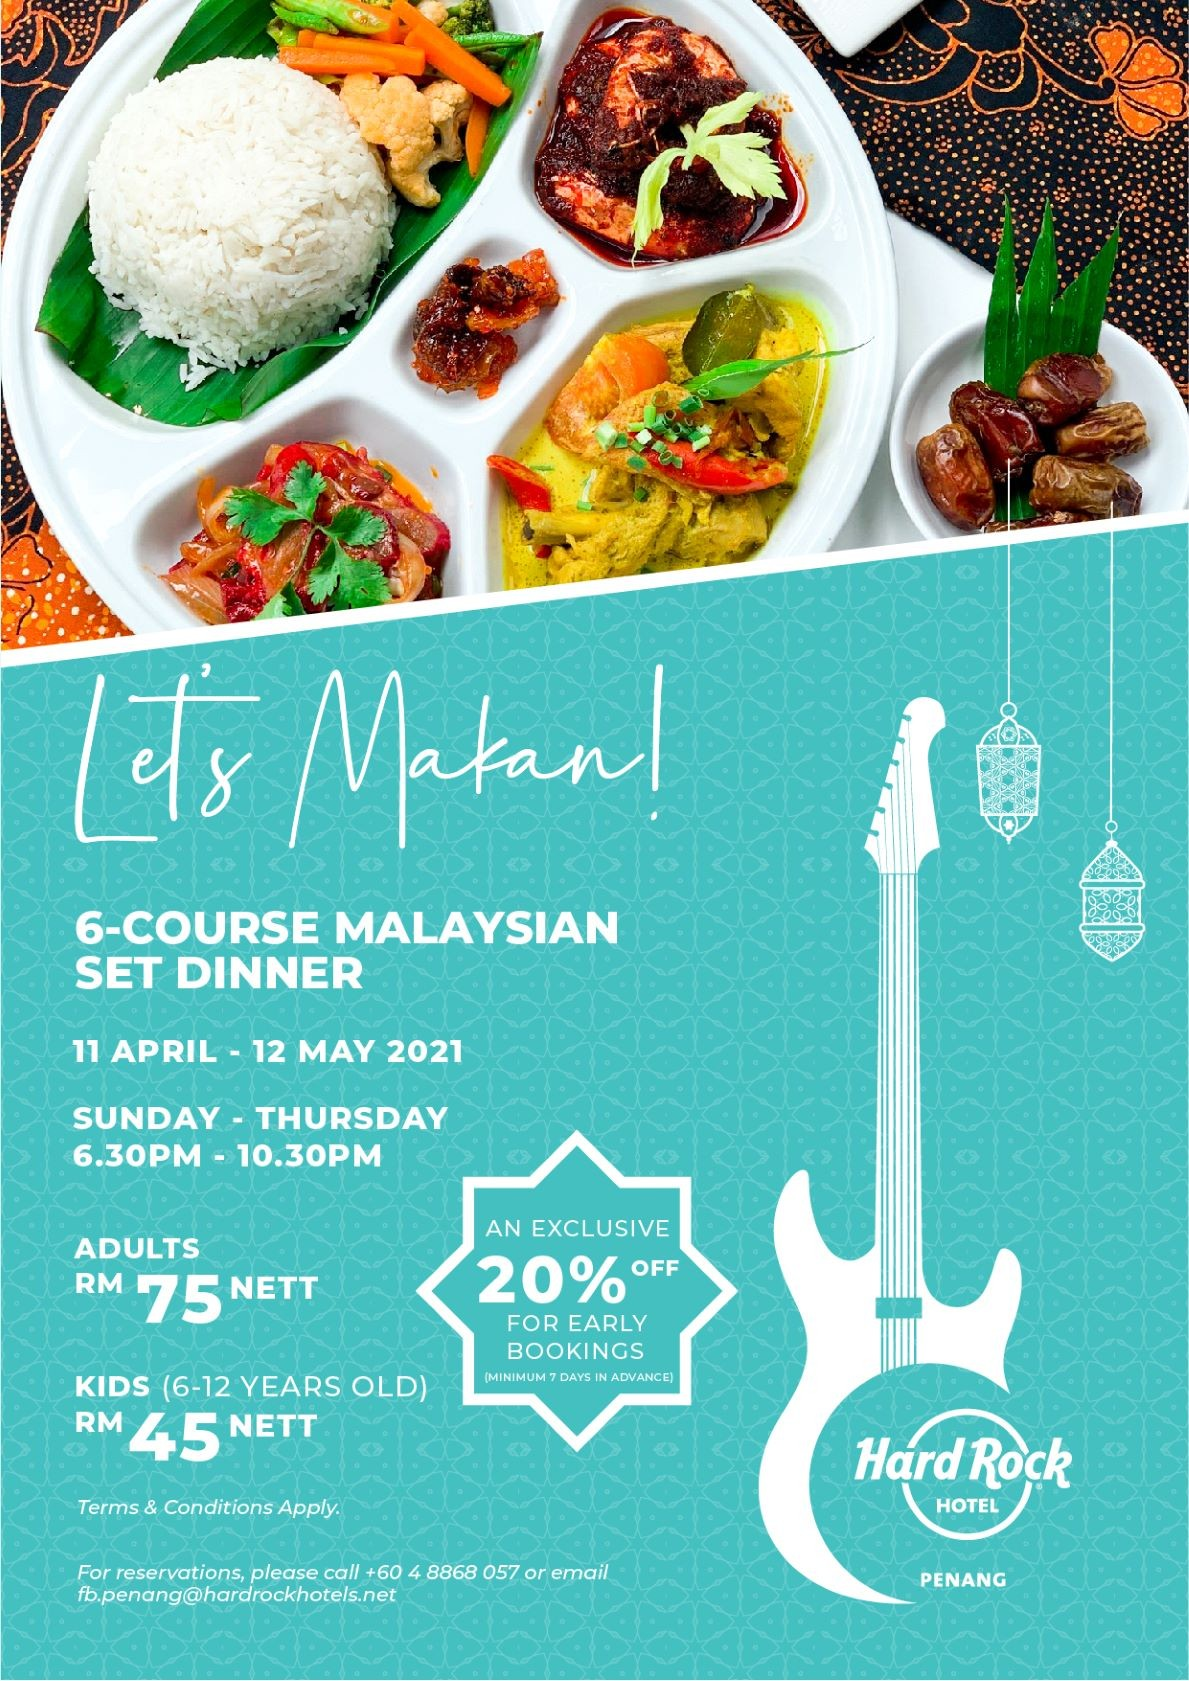 Let's Makan! 6 Course Malaysian Set Dinner Hard Rock Hotel Penang